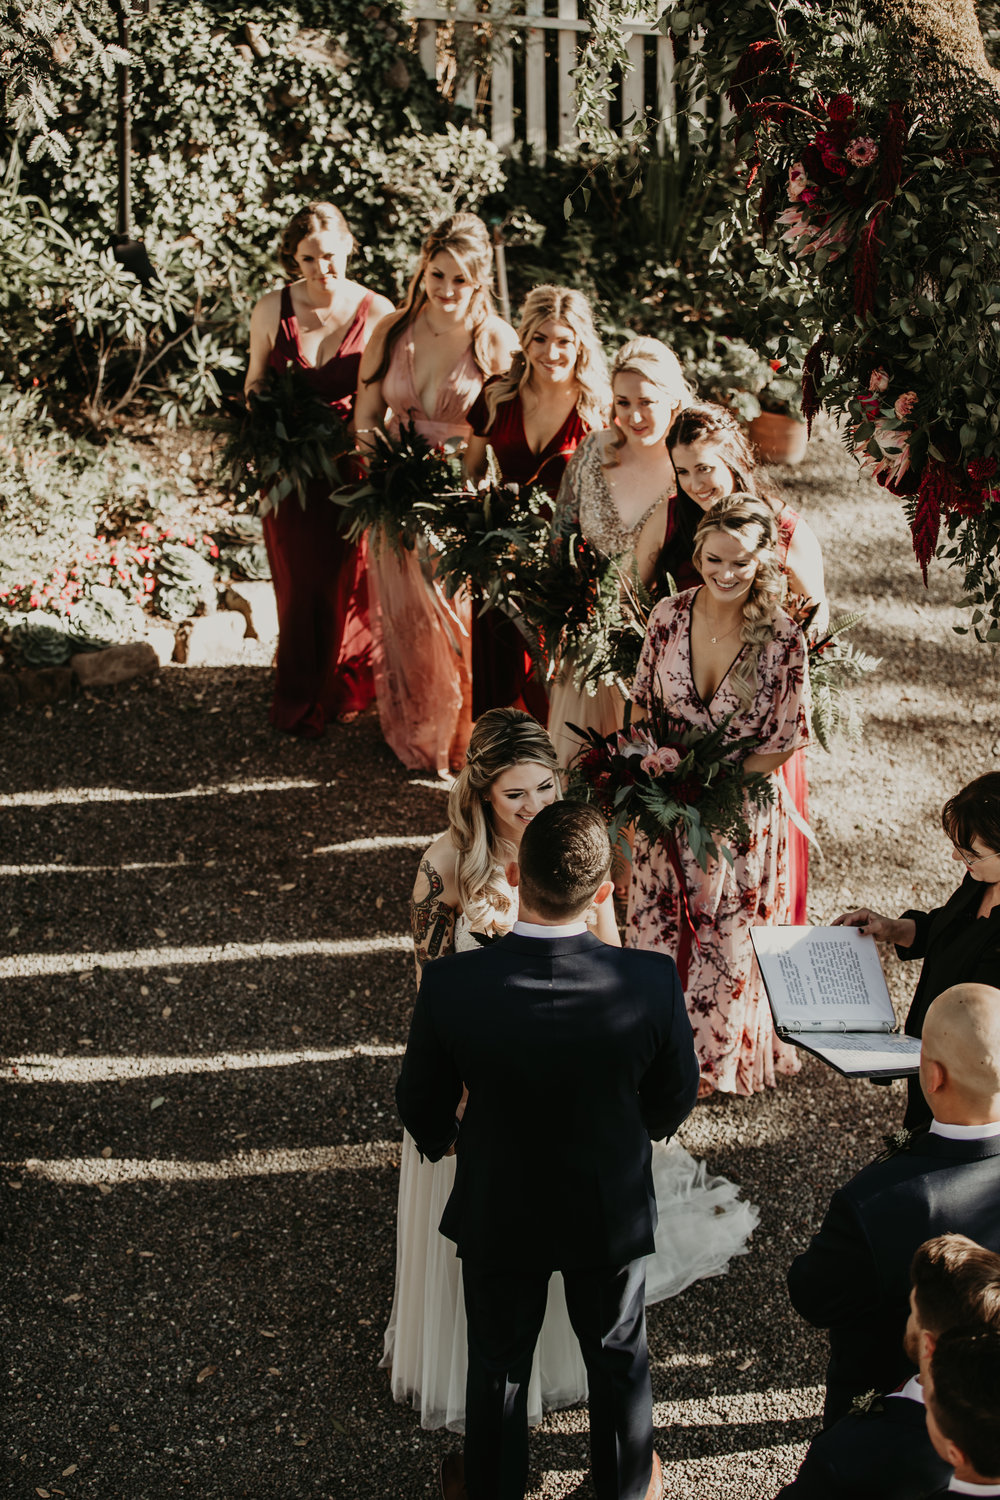 Nontraditional bridal bouquets and wedding party. Venn Floral with Vera Frances Photography at Beltane Ranch in Glen Ellen, California.